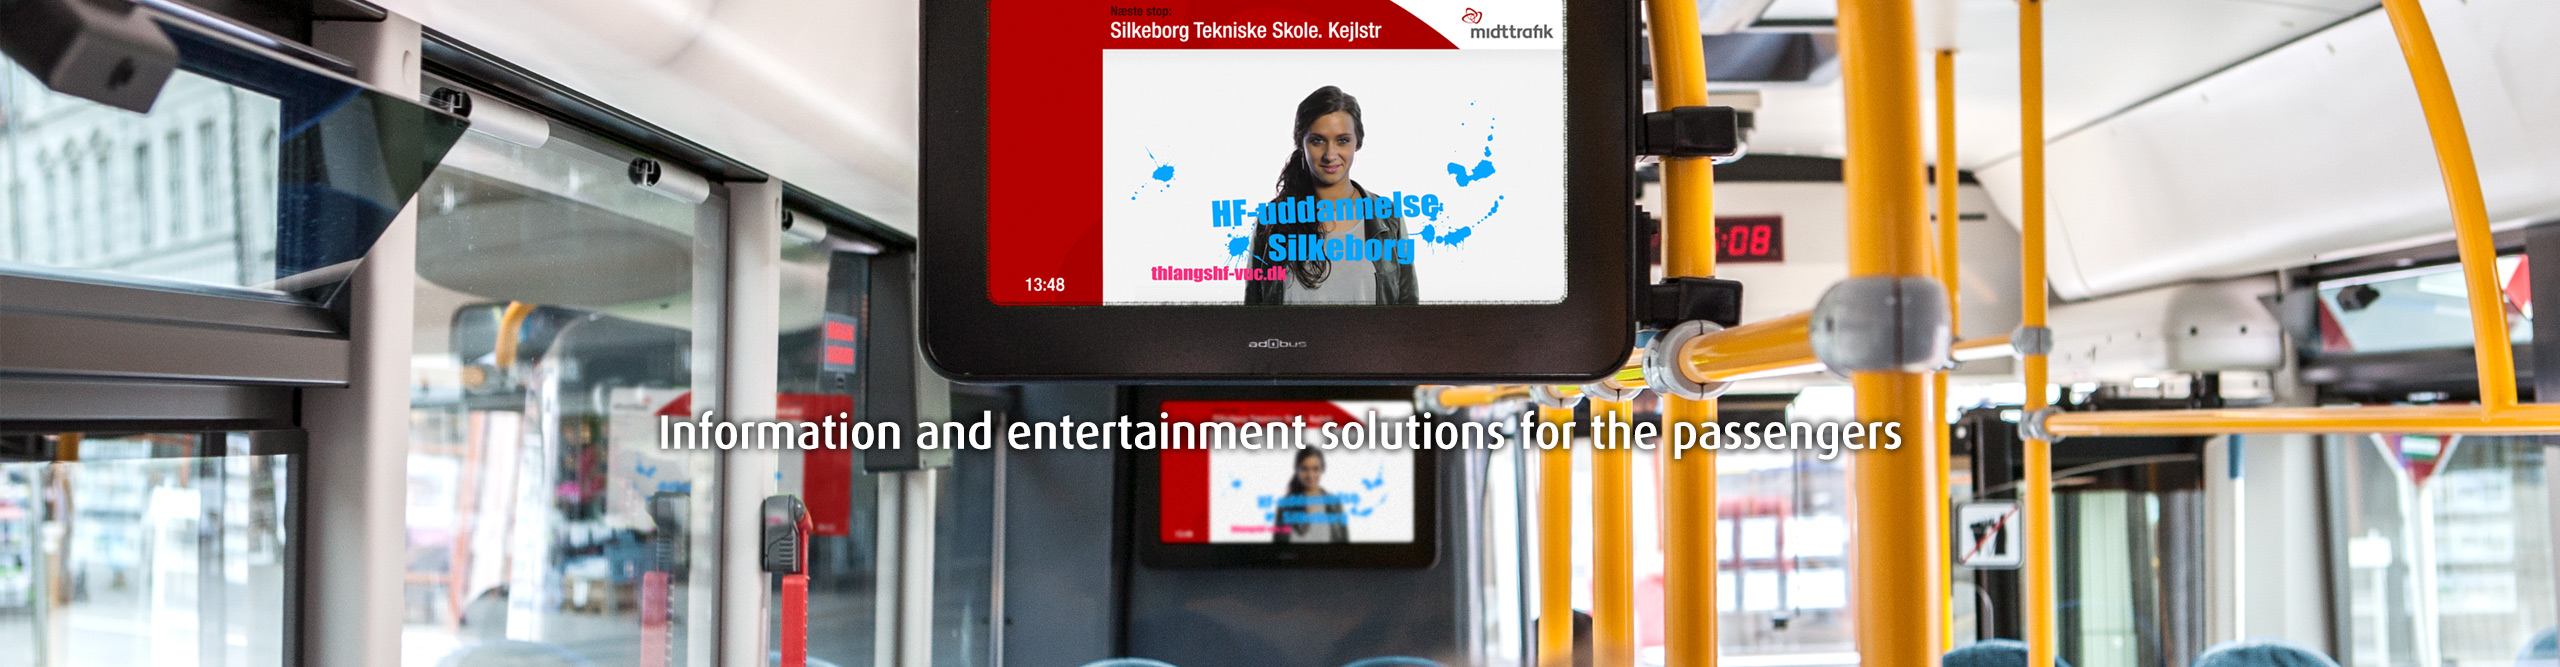 Information and entertainment solutions for the passengers